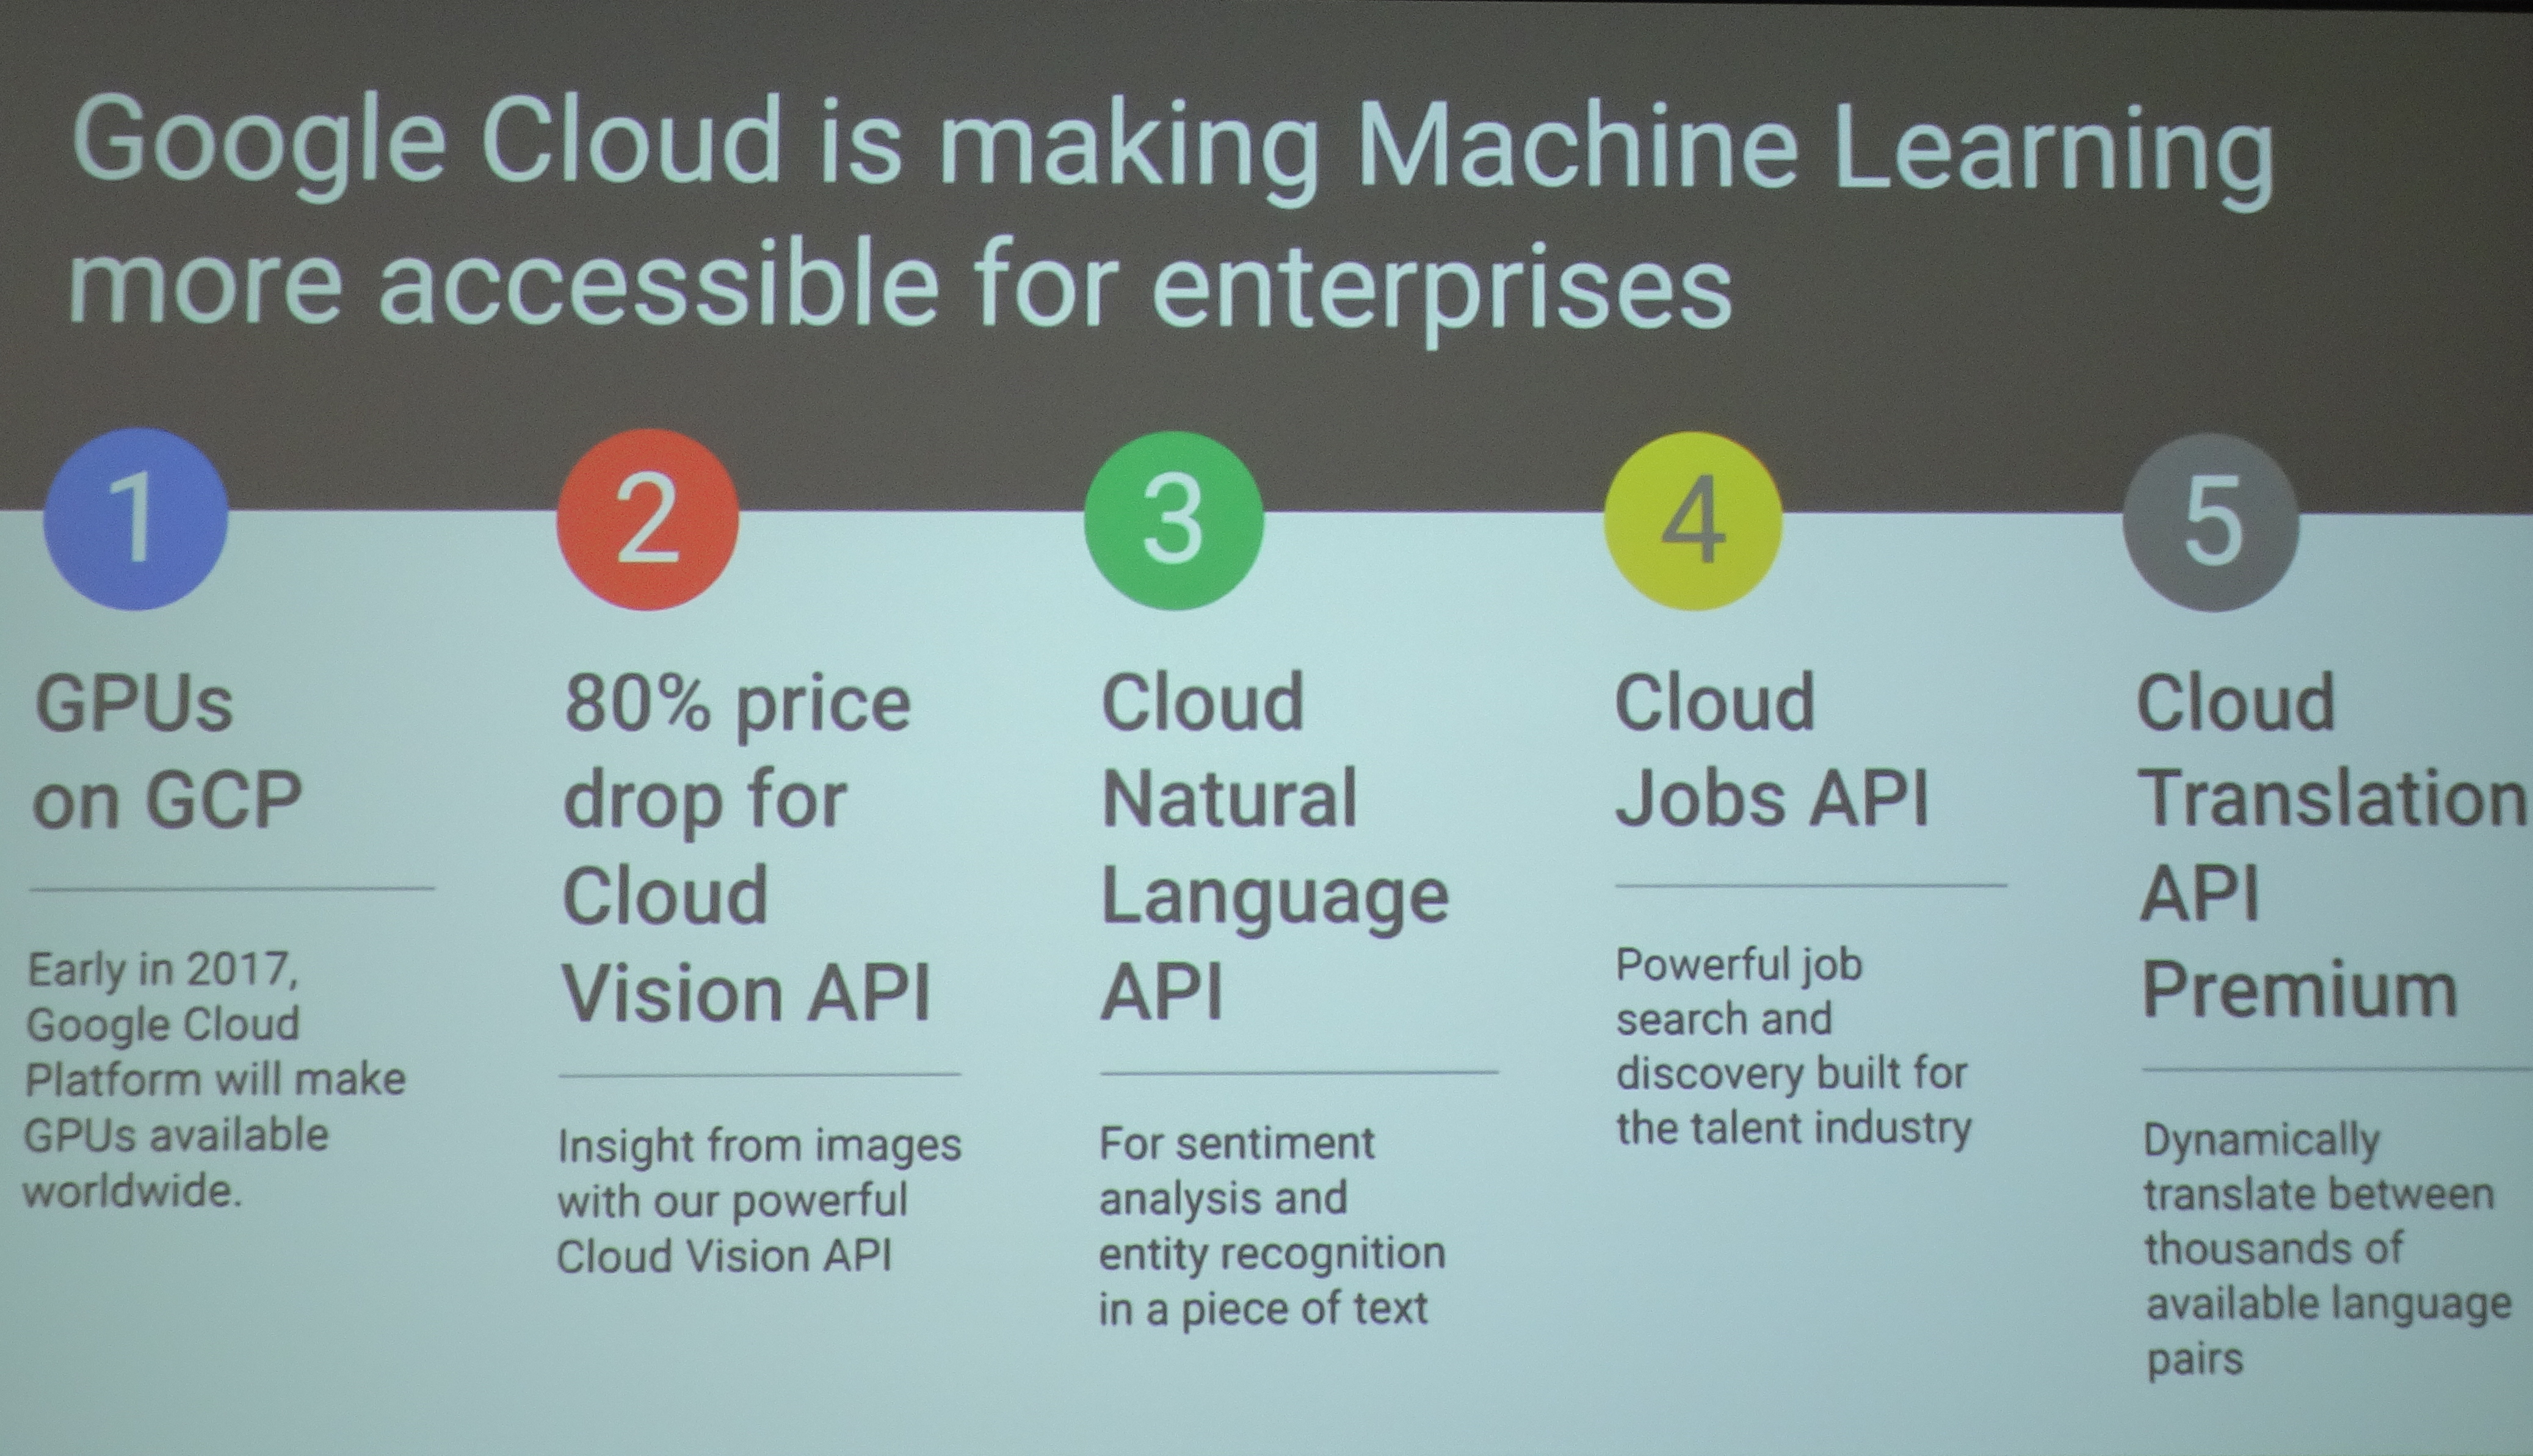 To boost its cloud, Google doubles down on machine learning